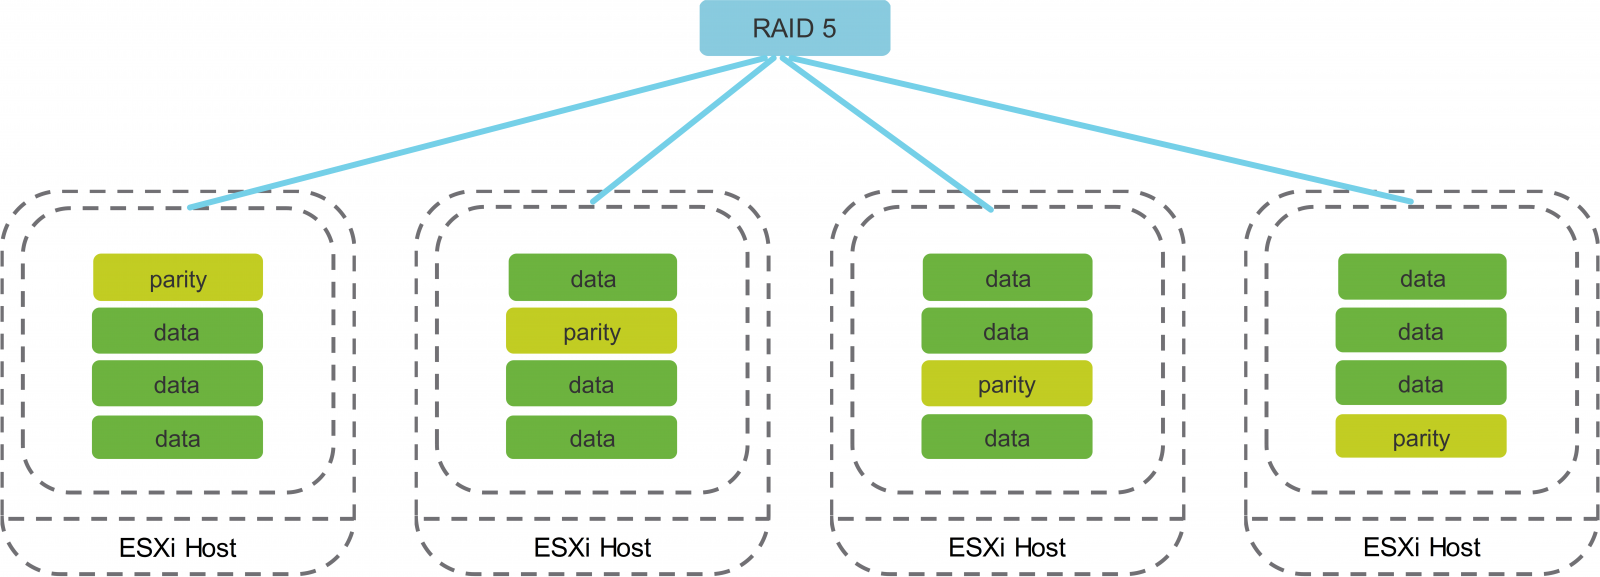 RAID 5 Data and Parity Placement